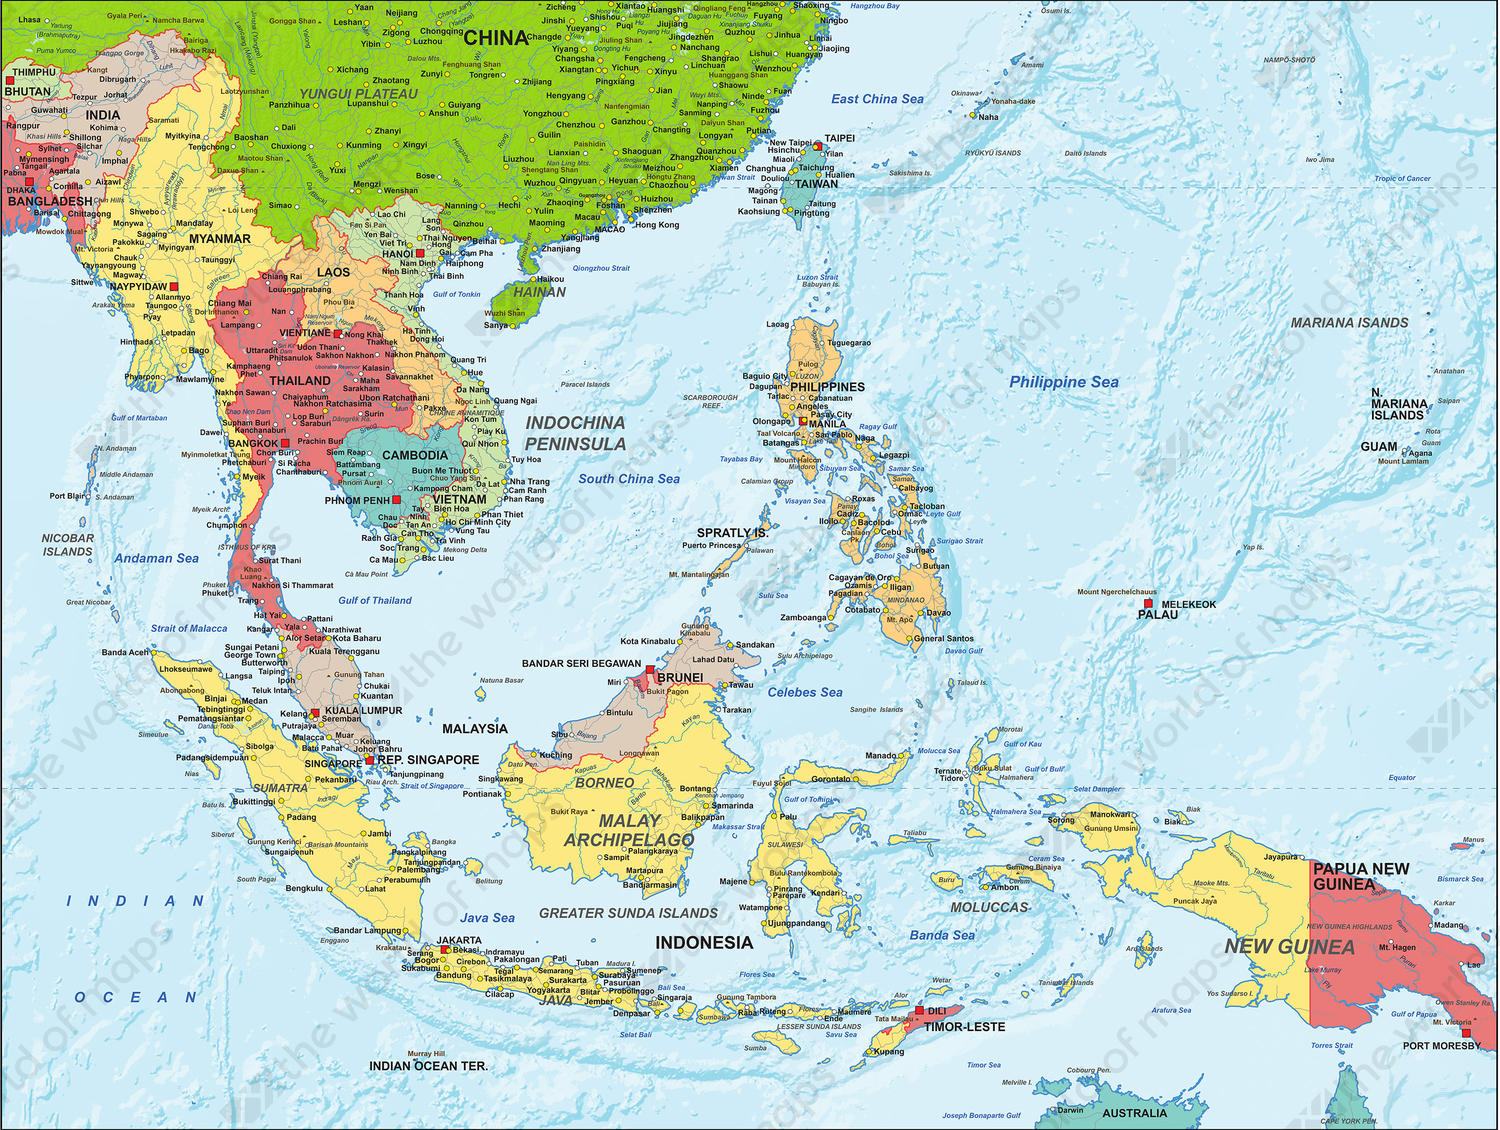 Digital Map South East Asia Political 1305 The World of Mapscom